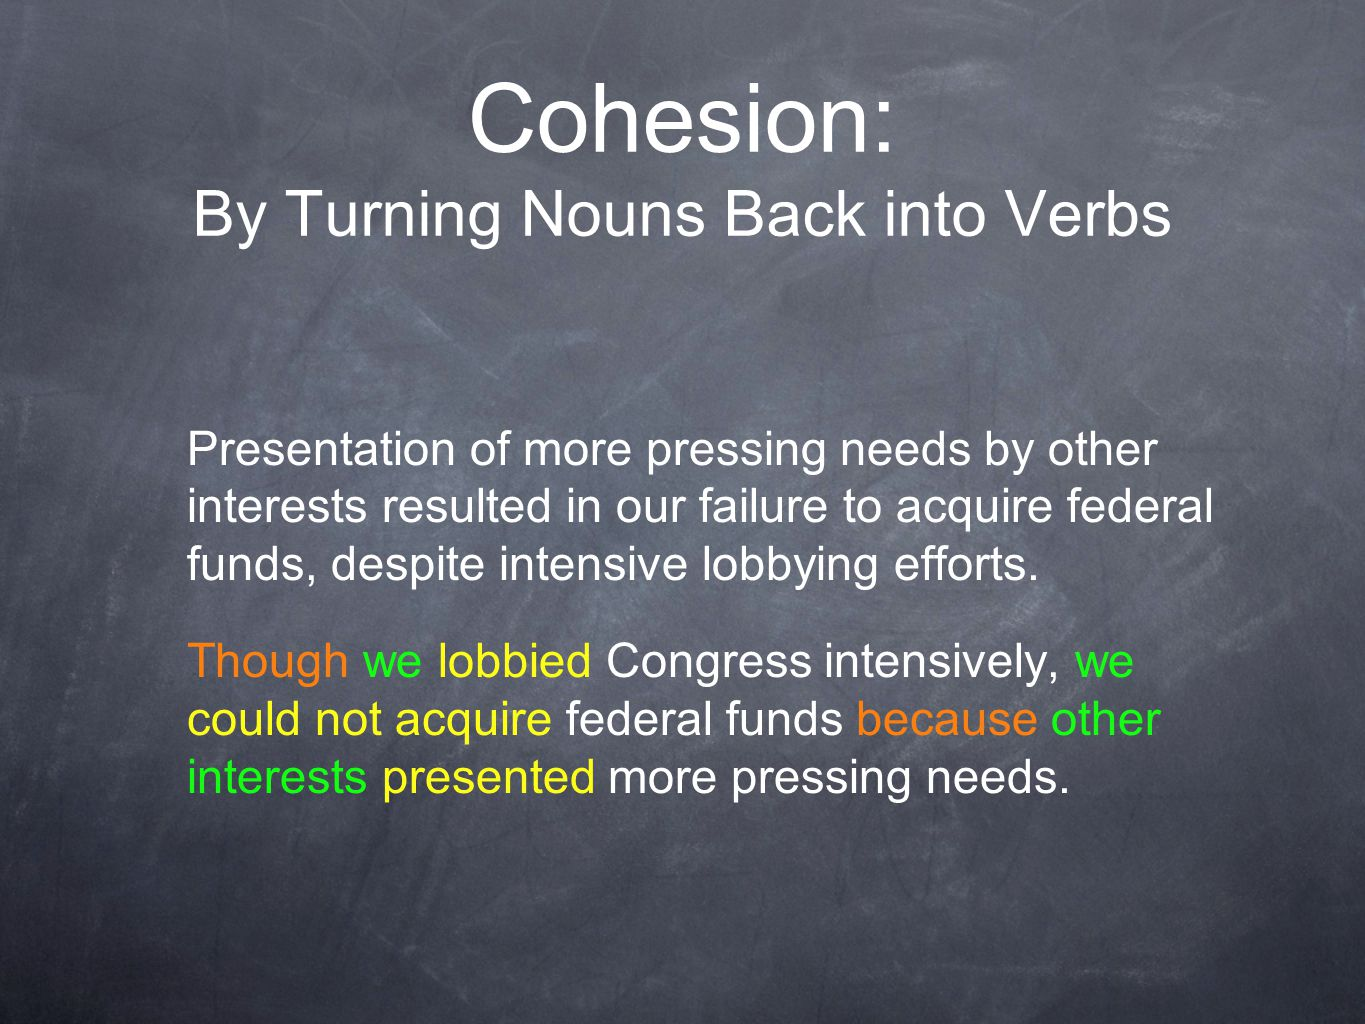 Cohesion: By Turning Nouns Back into Verbs Presentation of more pressing needs by other interests resulted in our failure to acquire federal funds, despite intensive lobbying efforts.